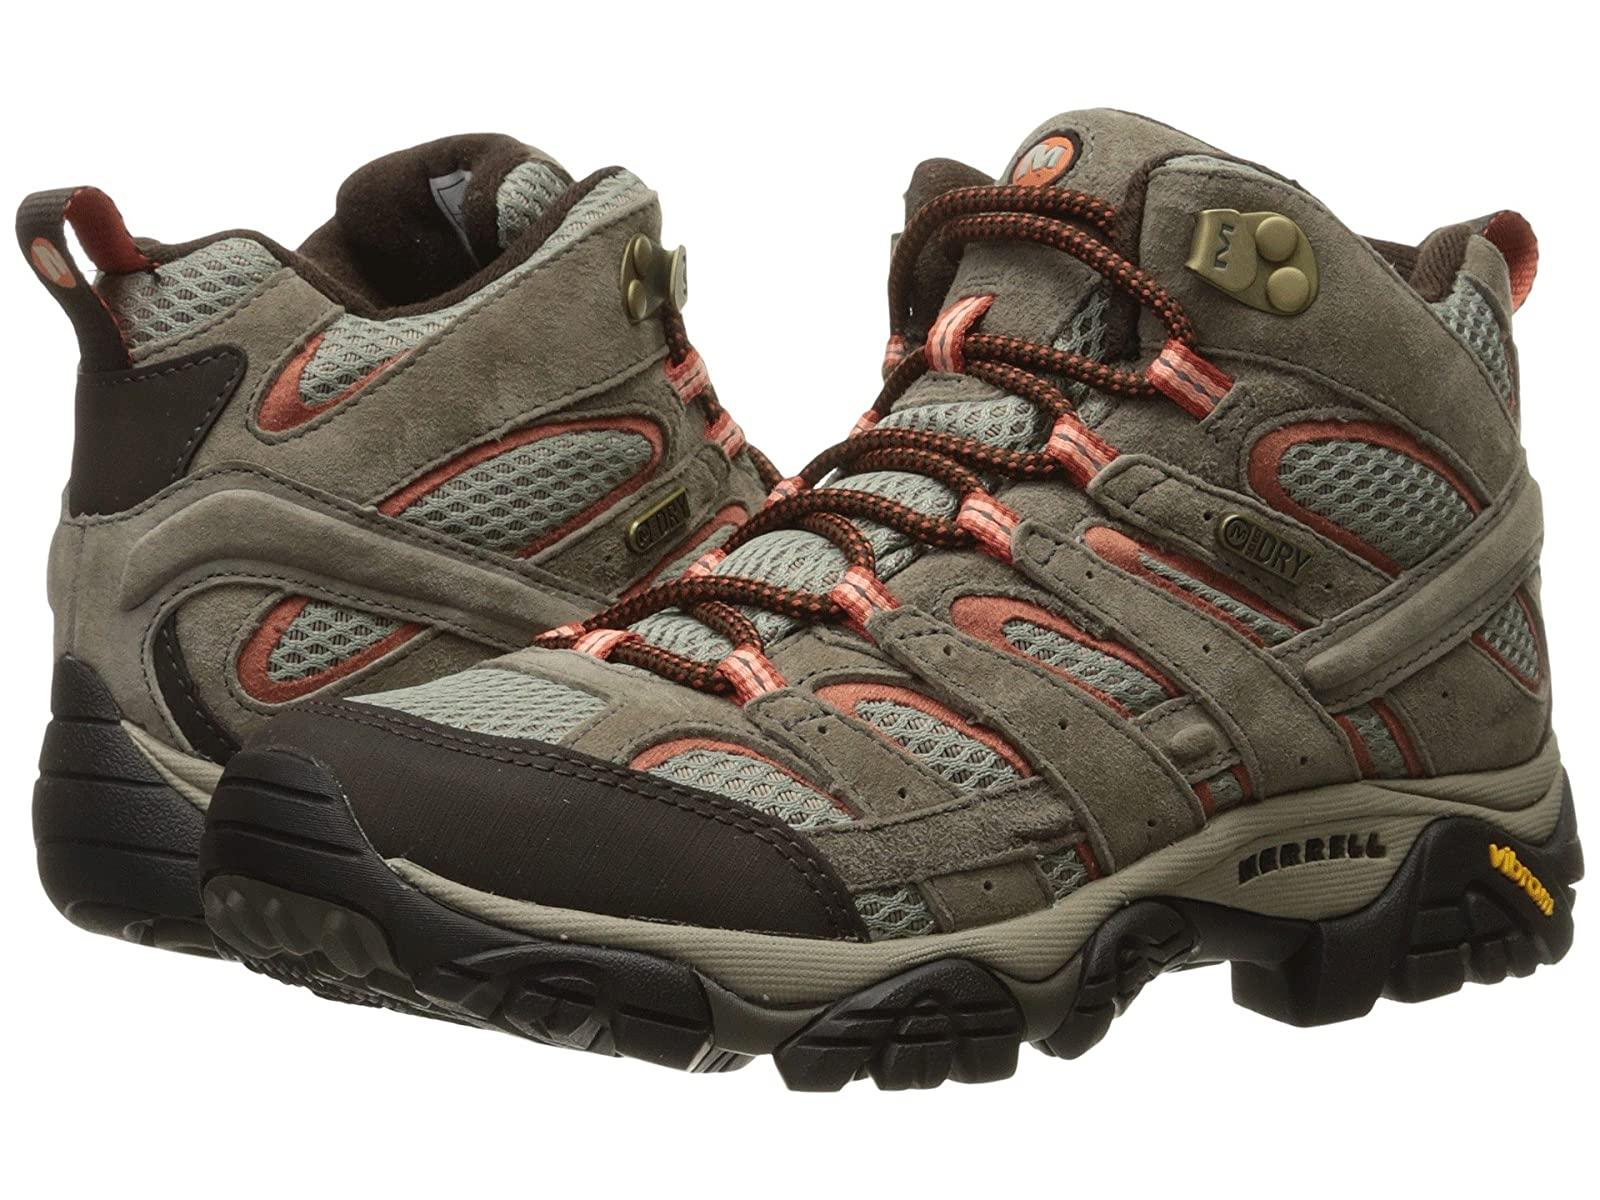 Merrell Moab 2 Mid WaterproofEconomical and quality shoes